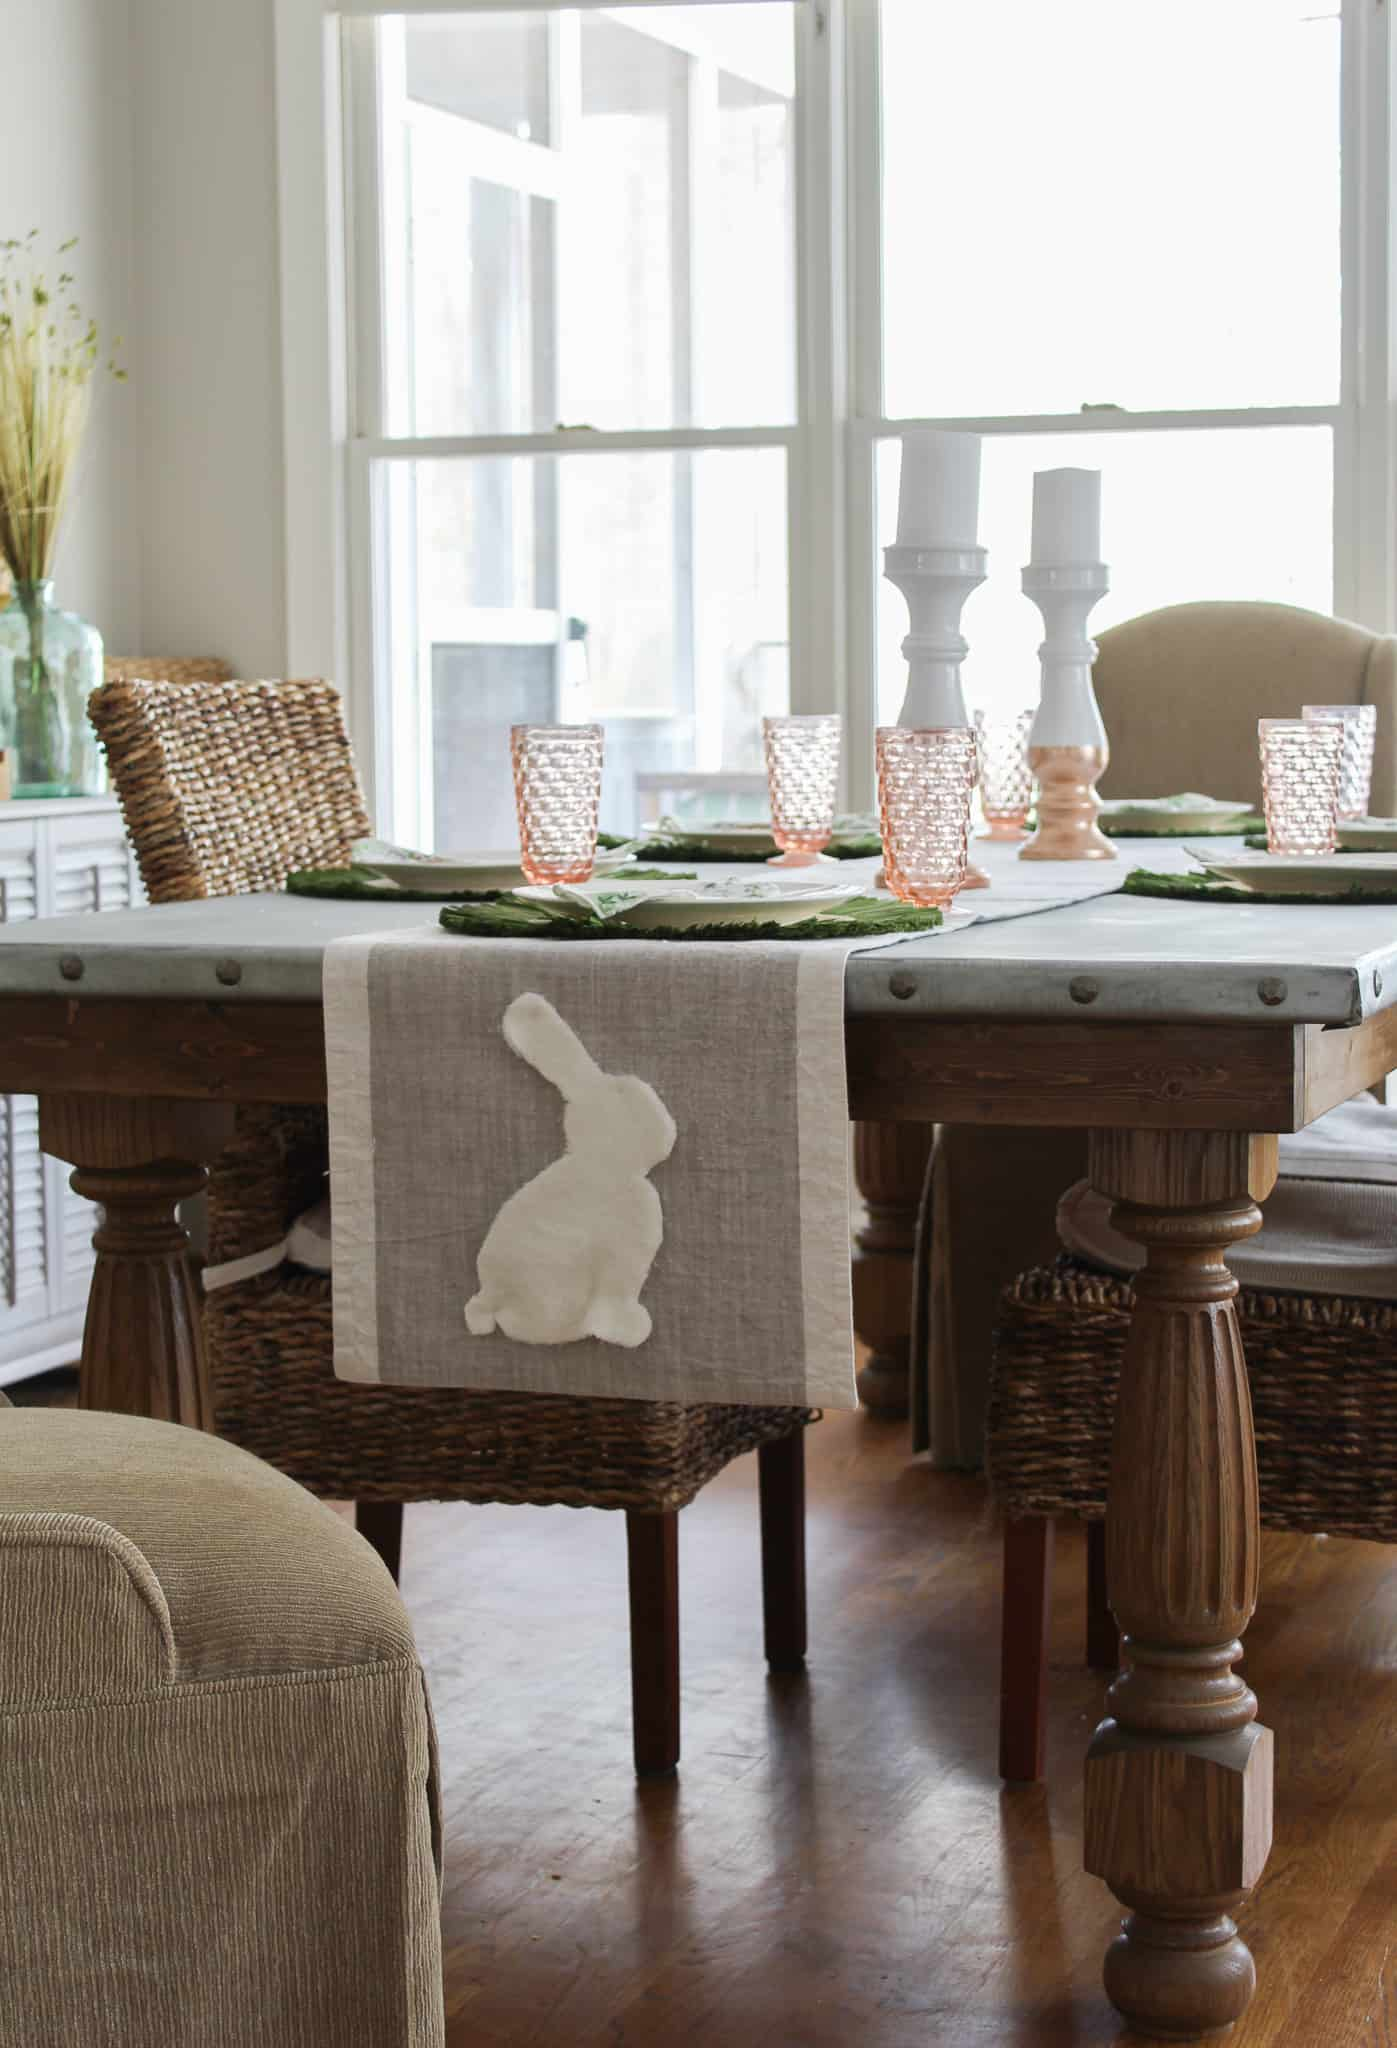 Adorable easy diy bunny table runner is super easy to make.